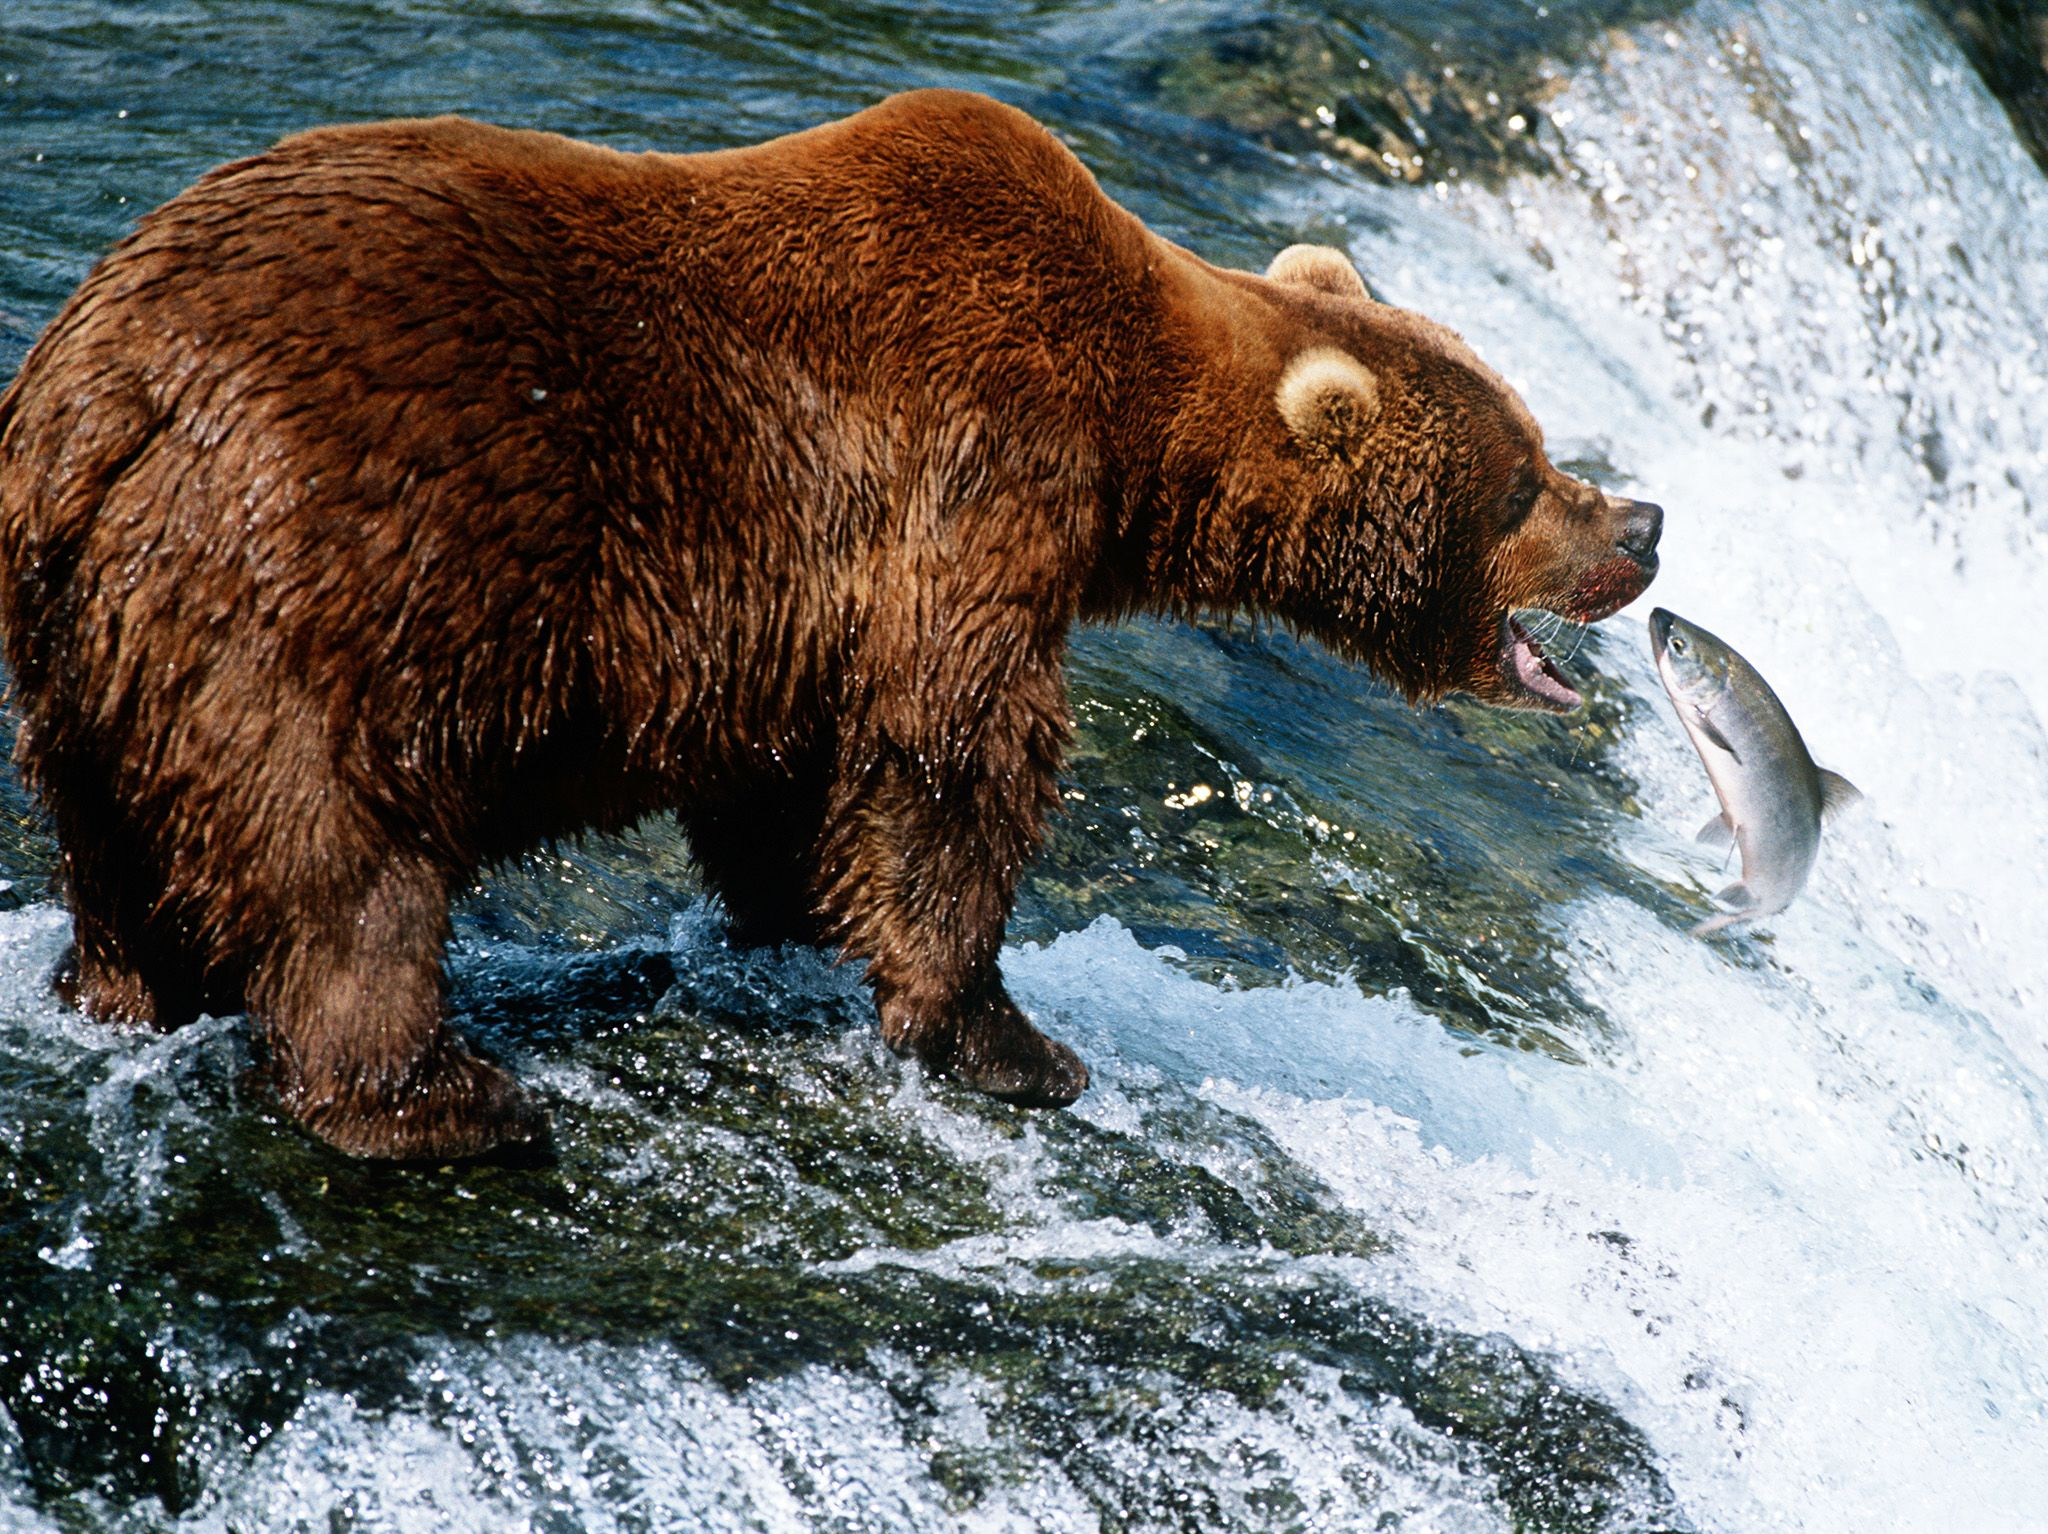 USA, Alaska, Katmai National Park, Brown Bear catching Salmon in river, side view. This image is... [Photo of the day - December 2020]